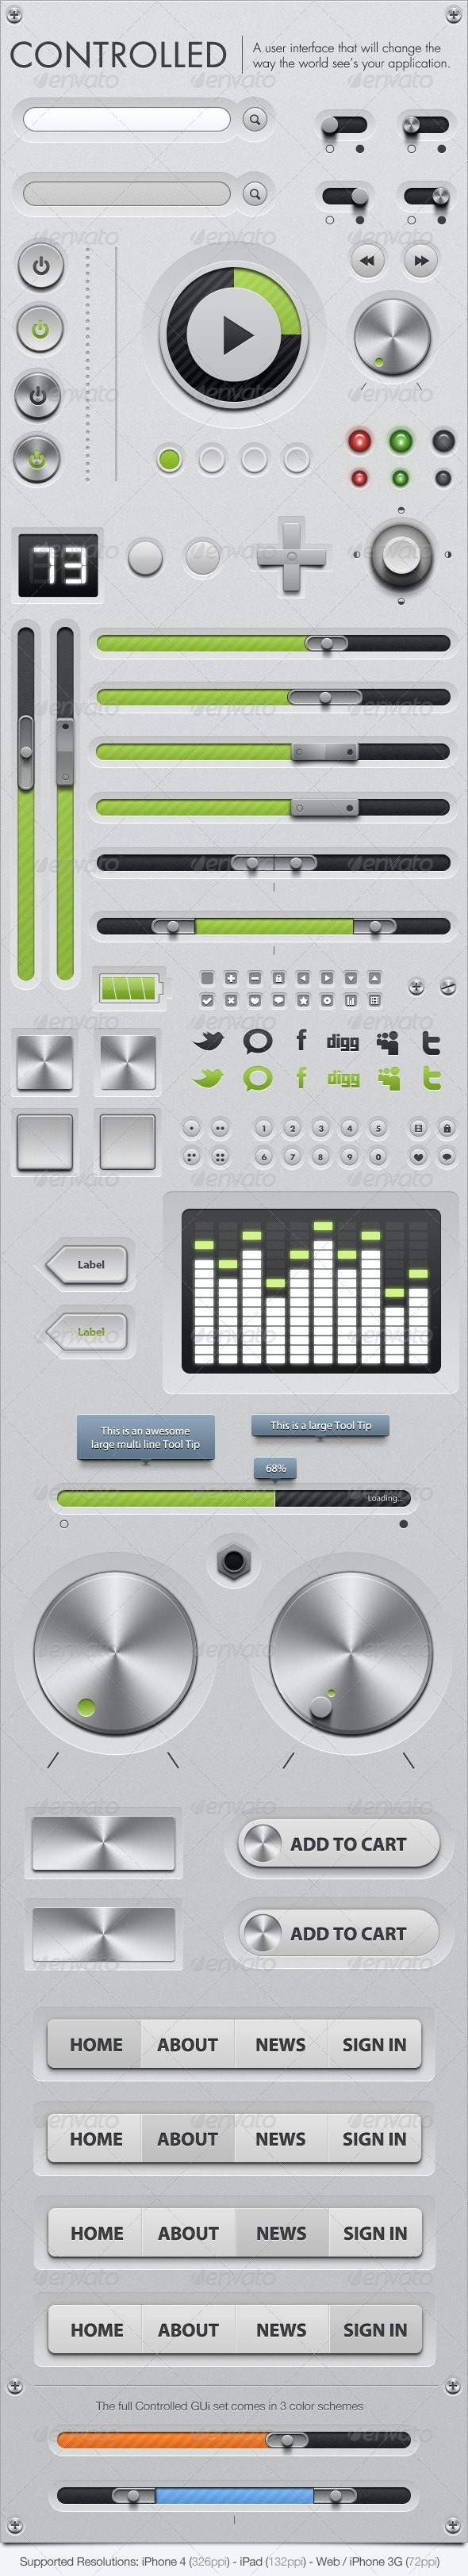 Controlled - GUi - Graphical User Interface - User Interfaces Web Elements